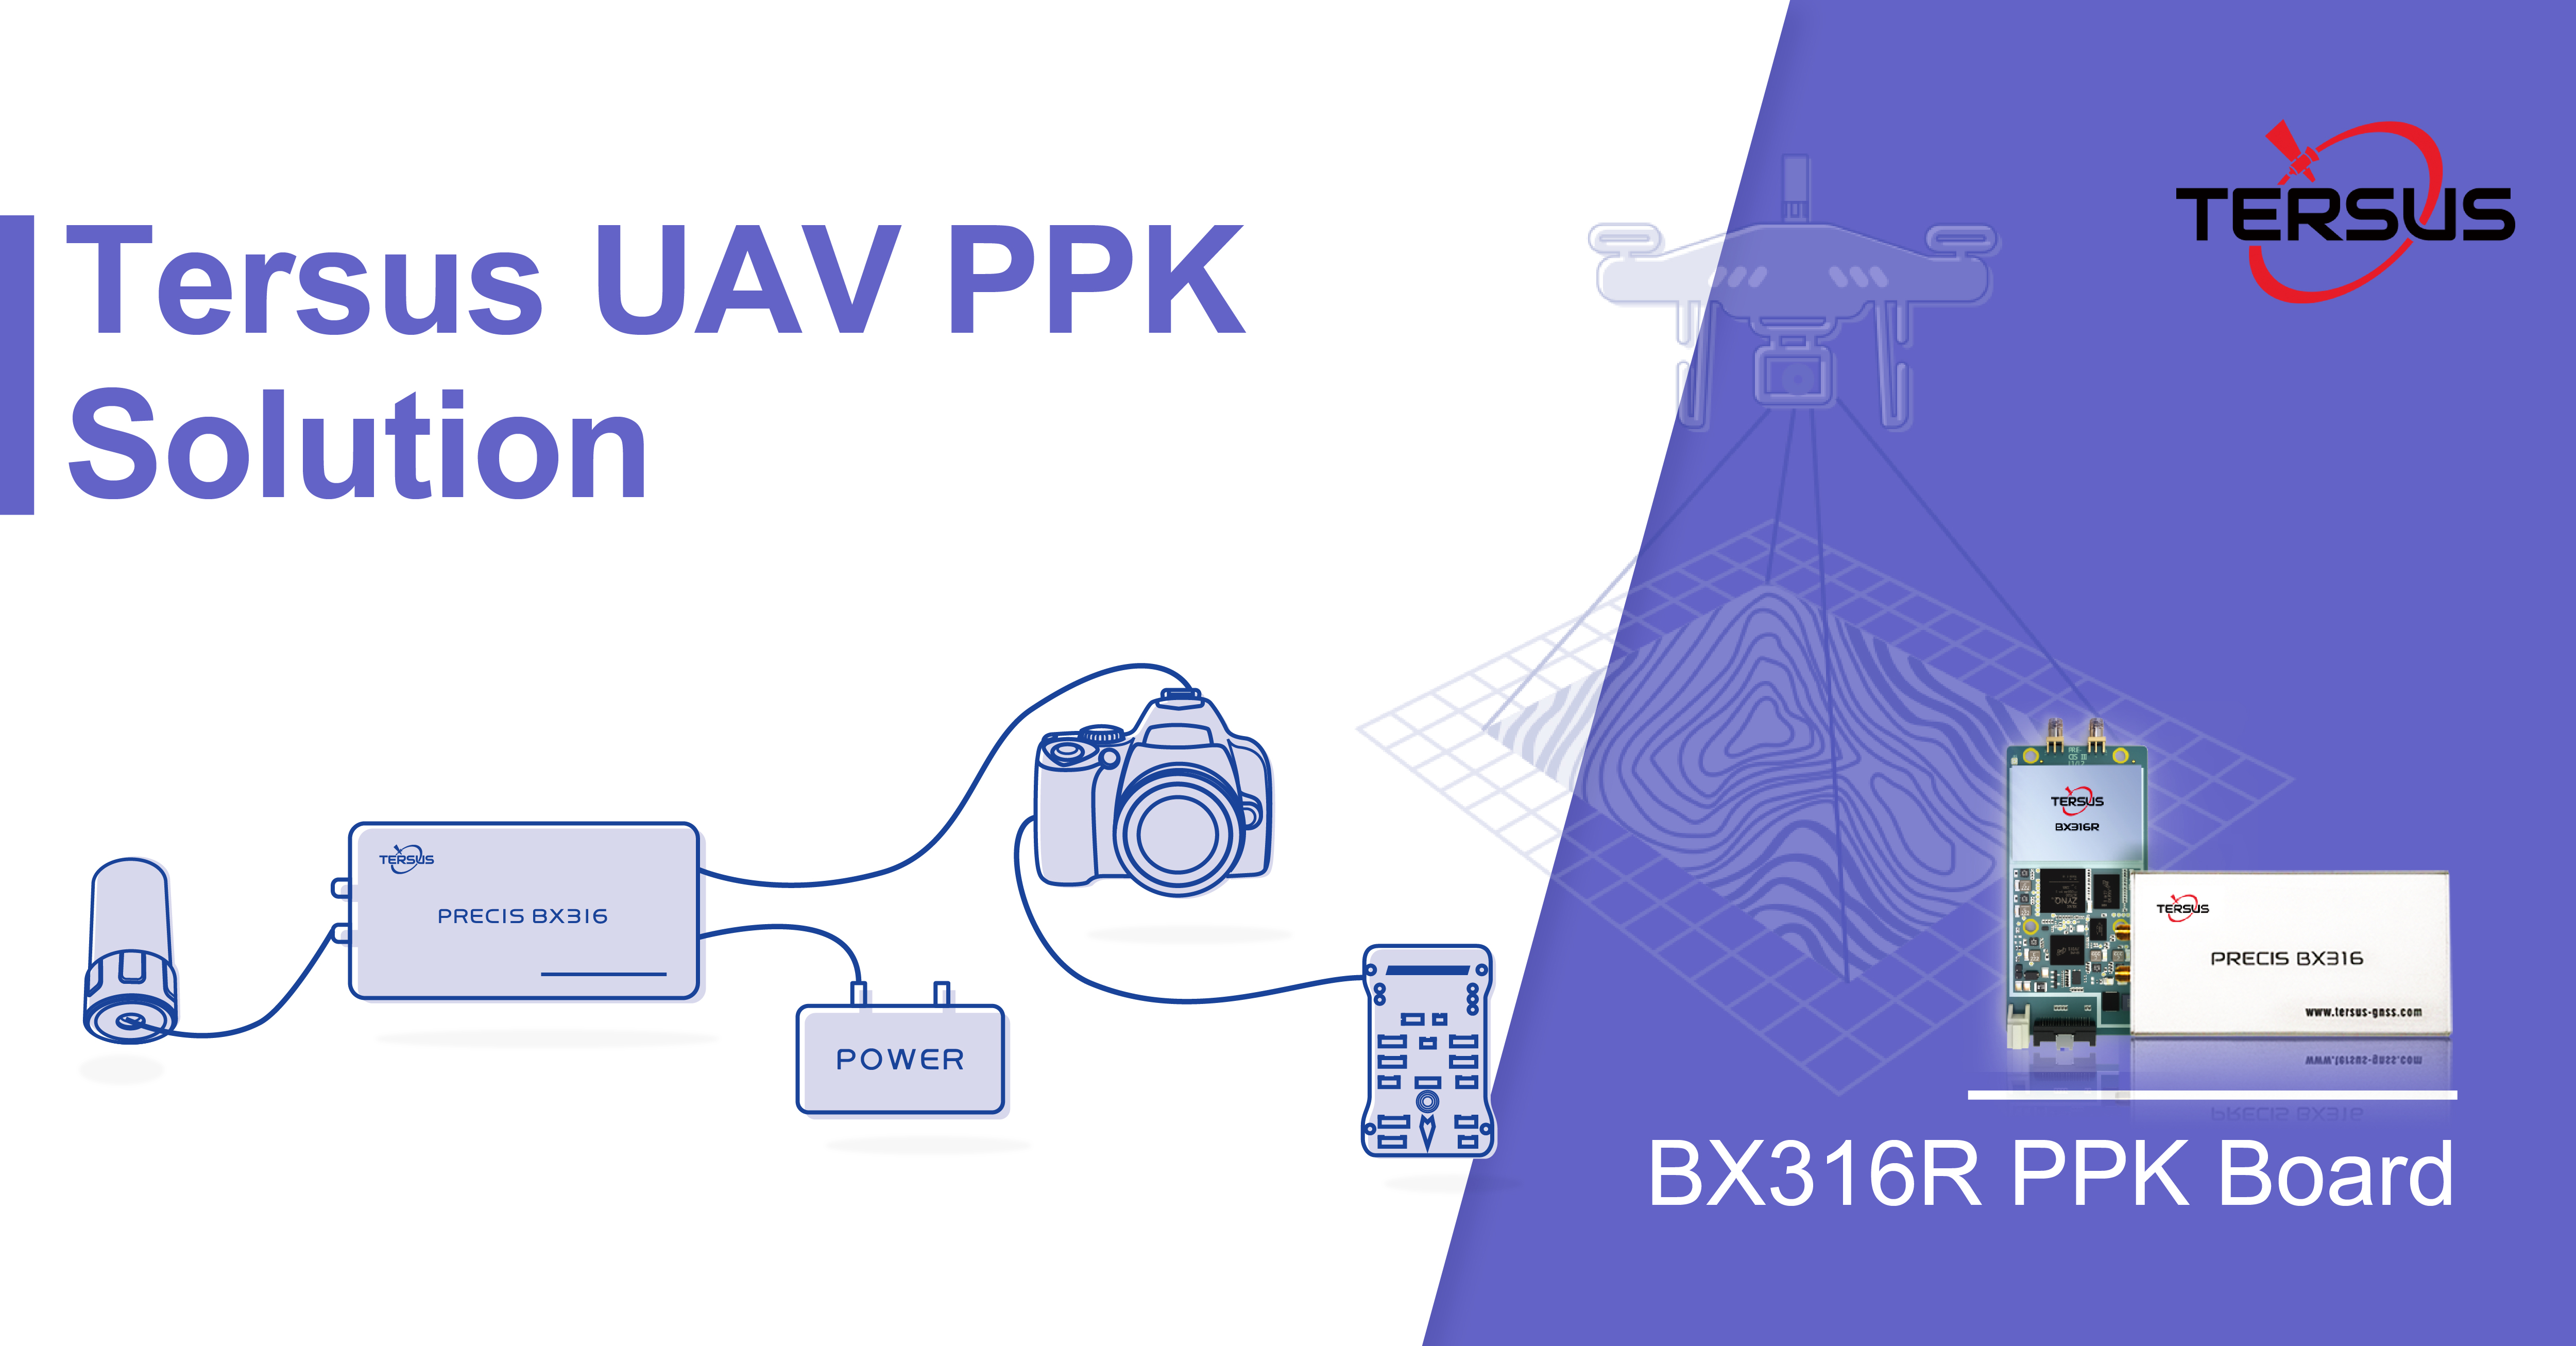 Tersus introduces a practical solution for UAV PPK applications